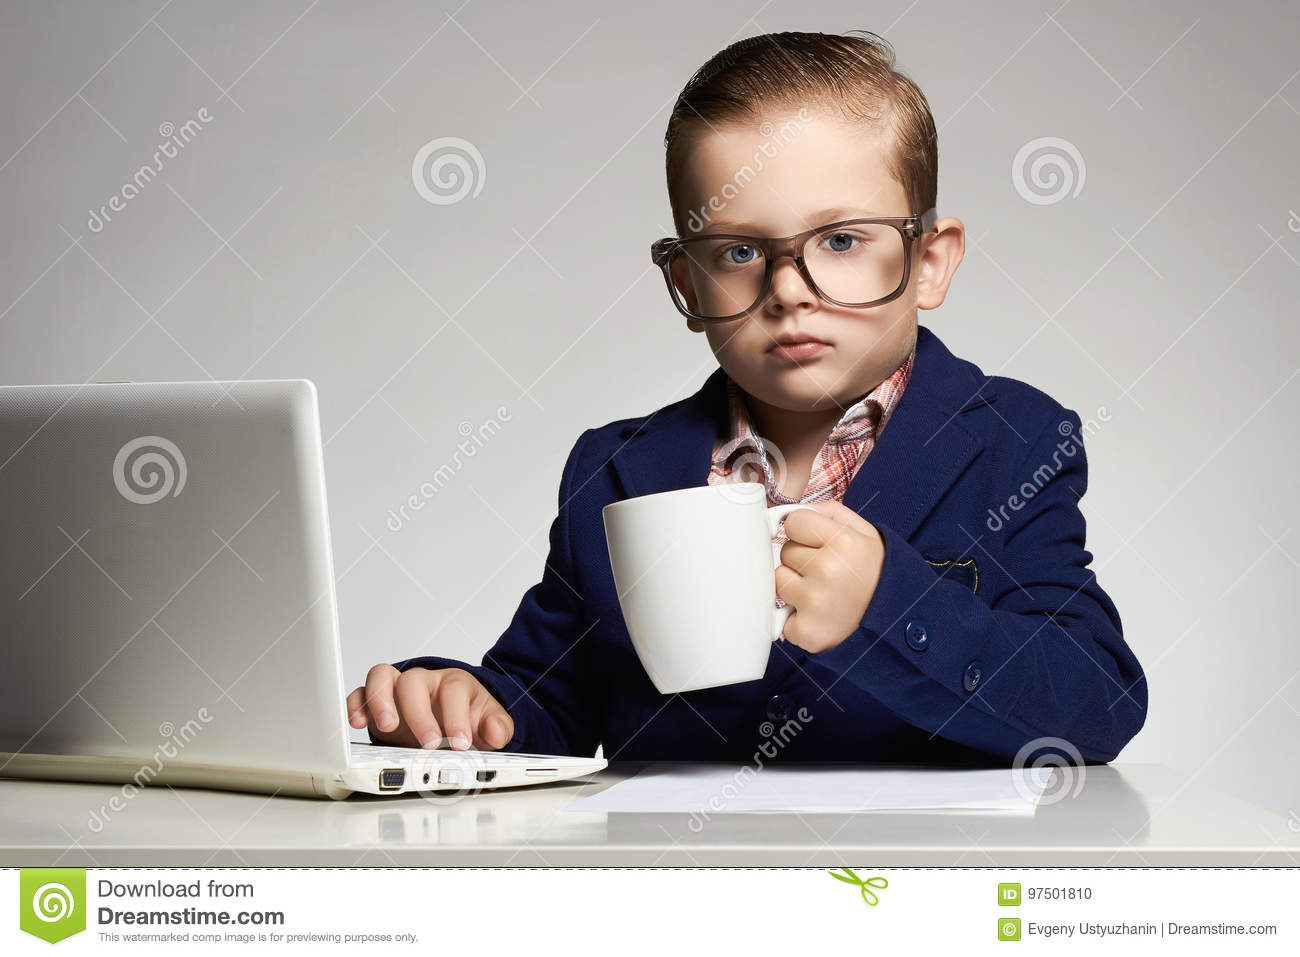 Young business child with computer